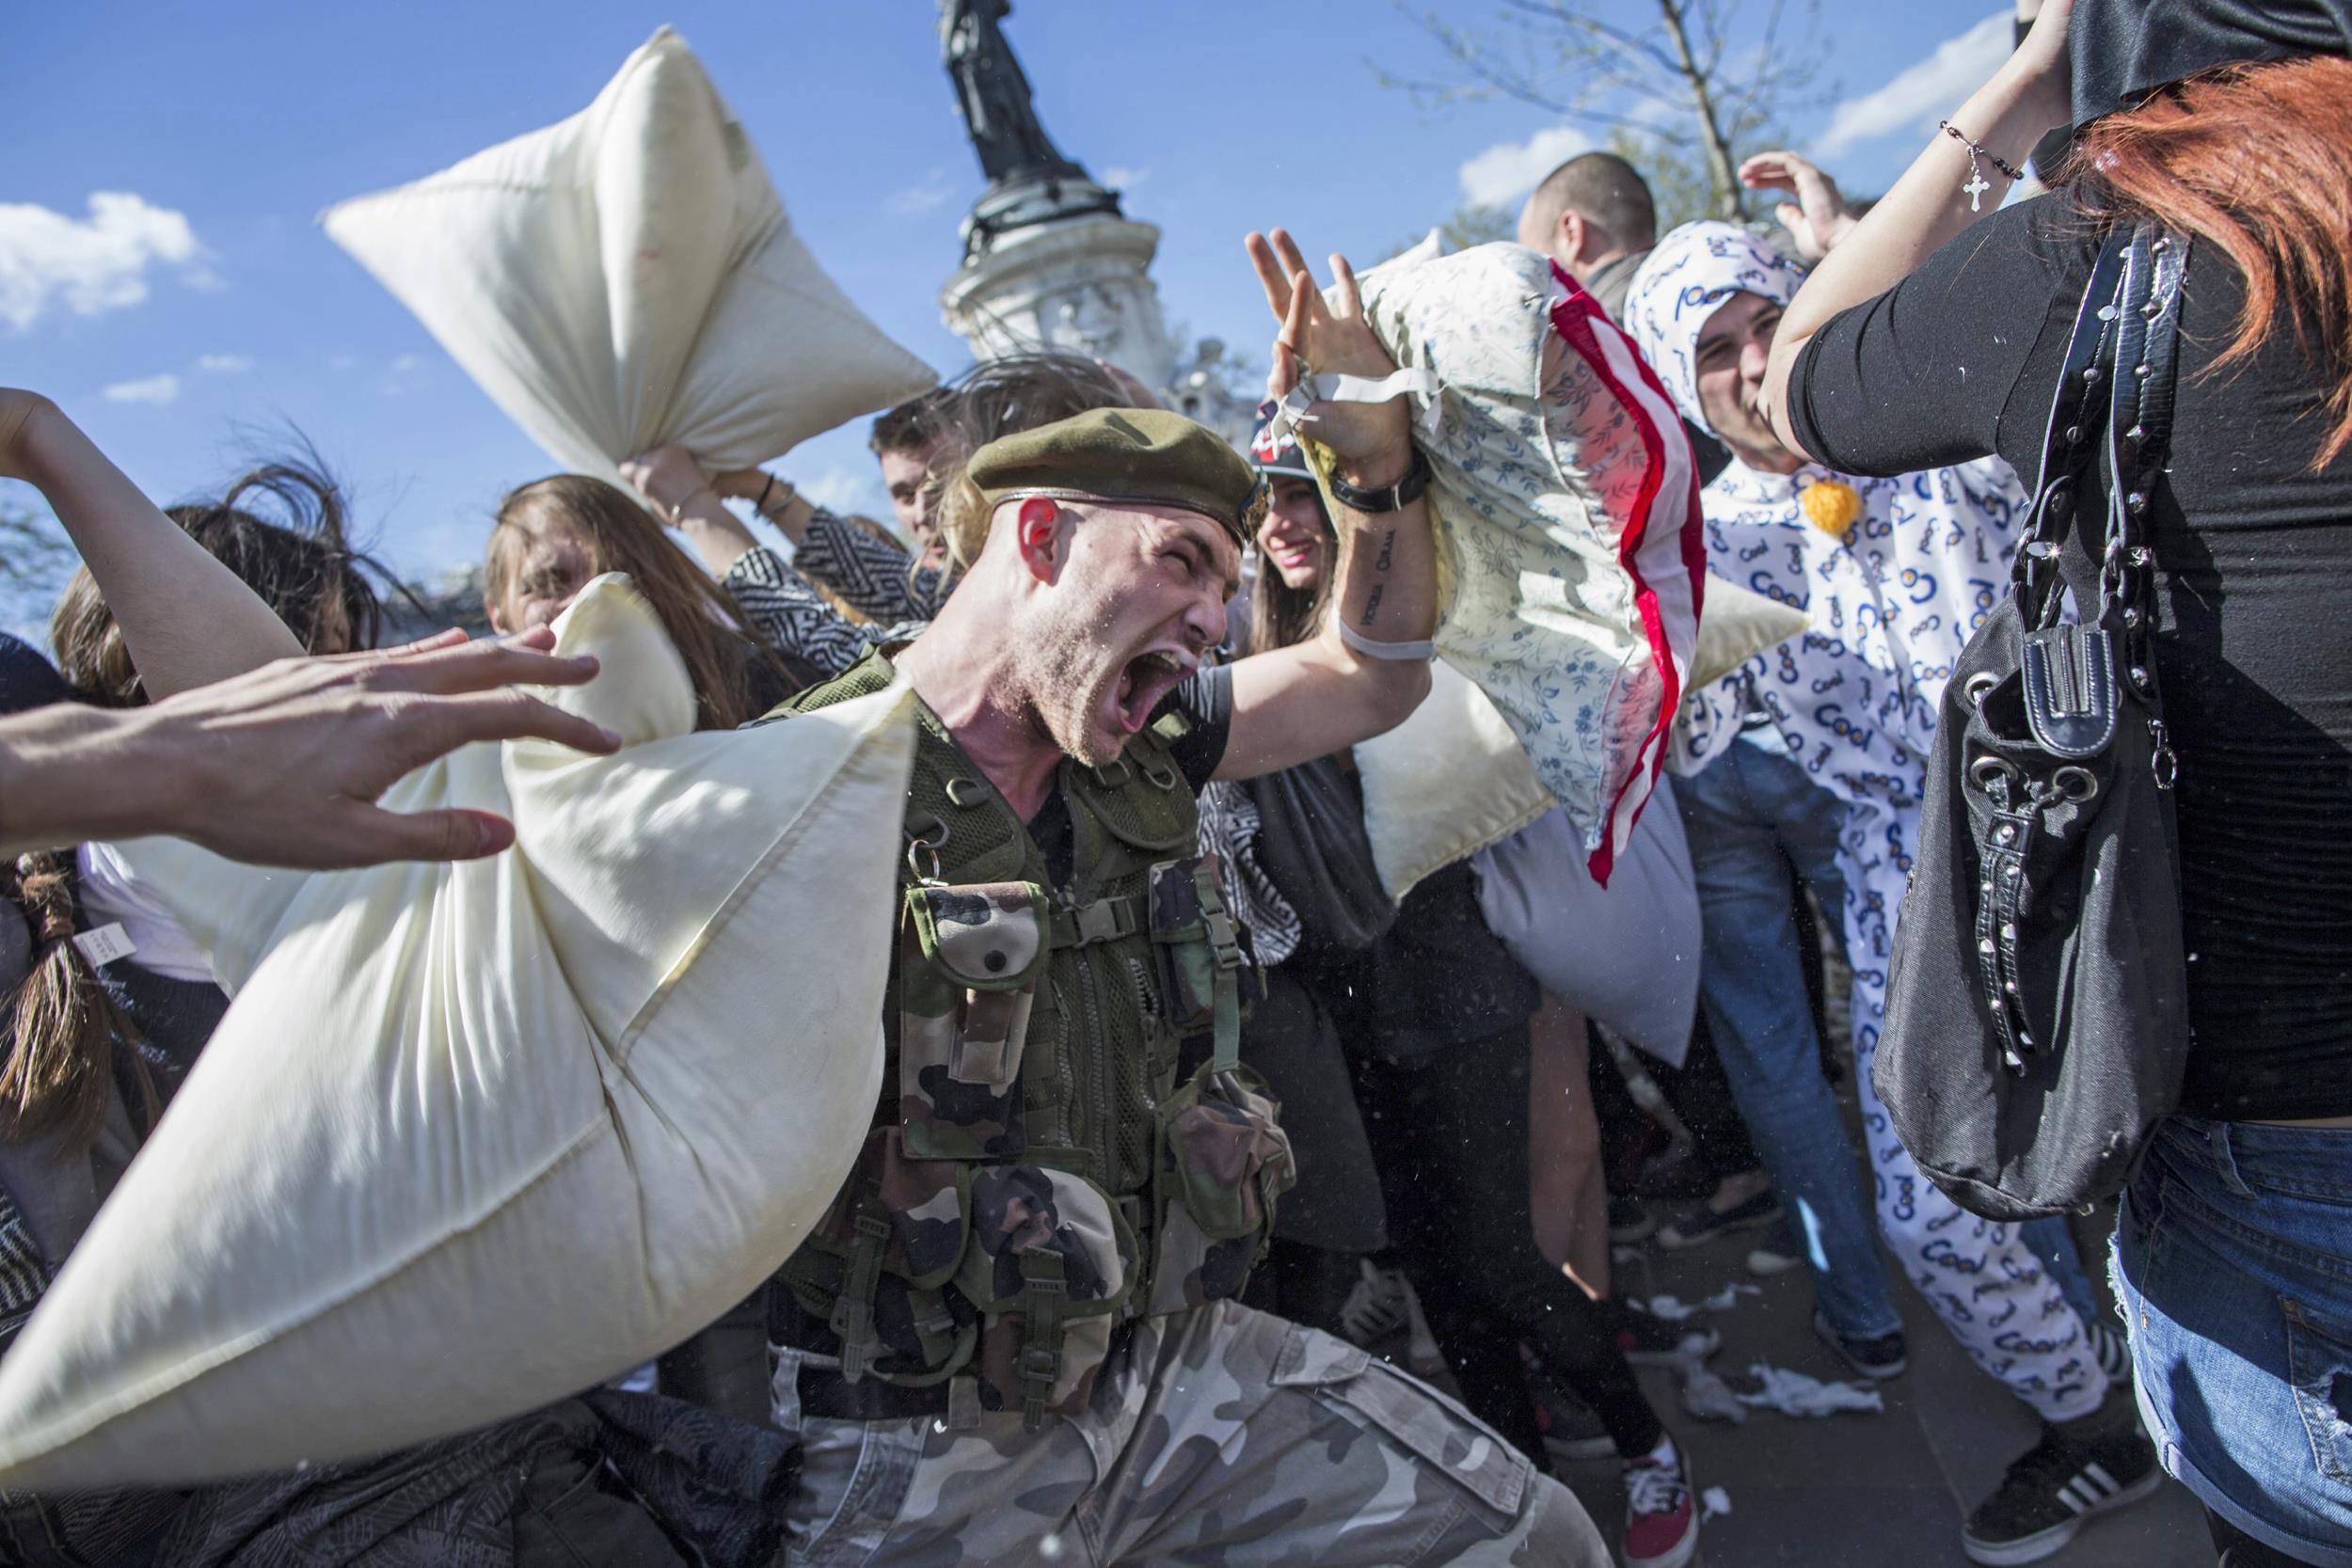 Image: International Paris Pillow Fight Day 2104